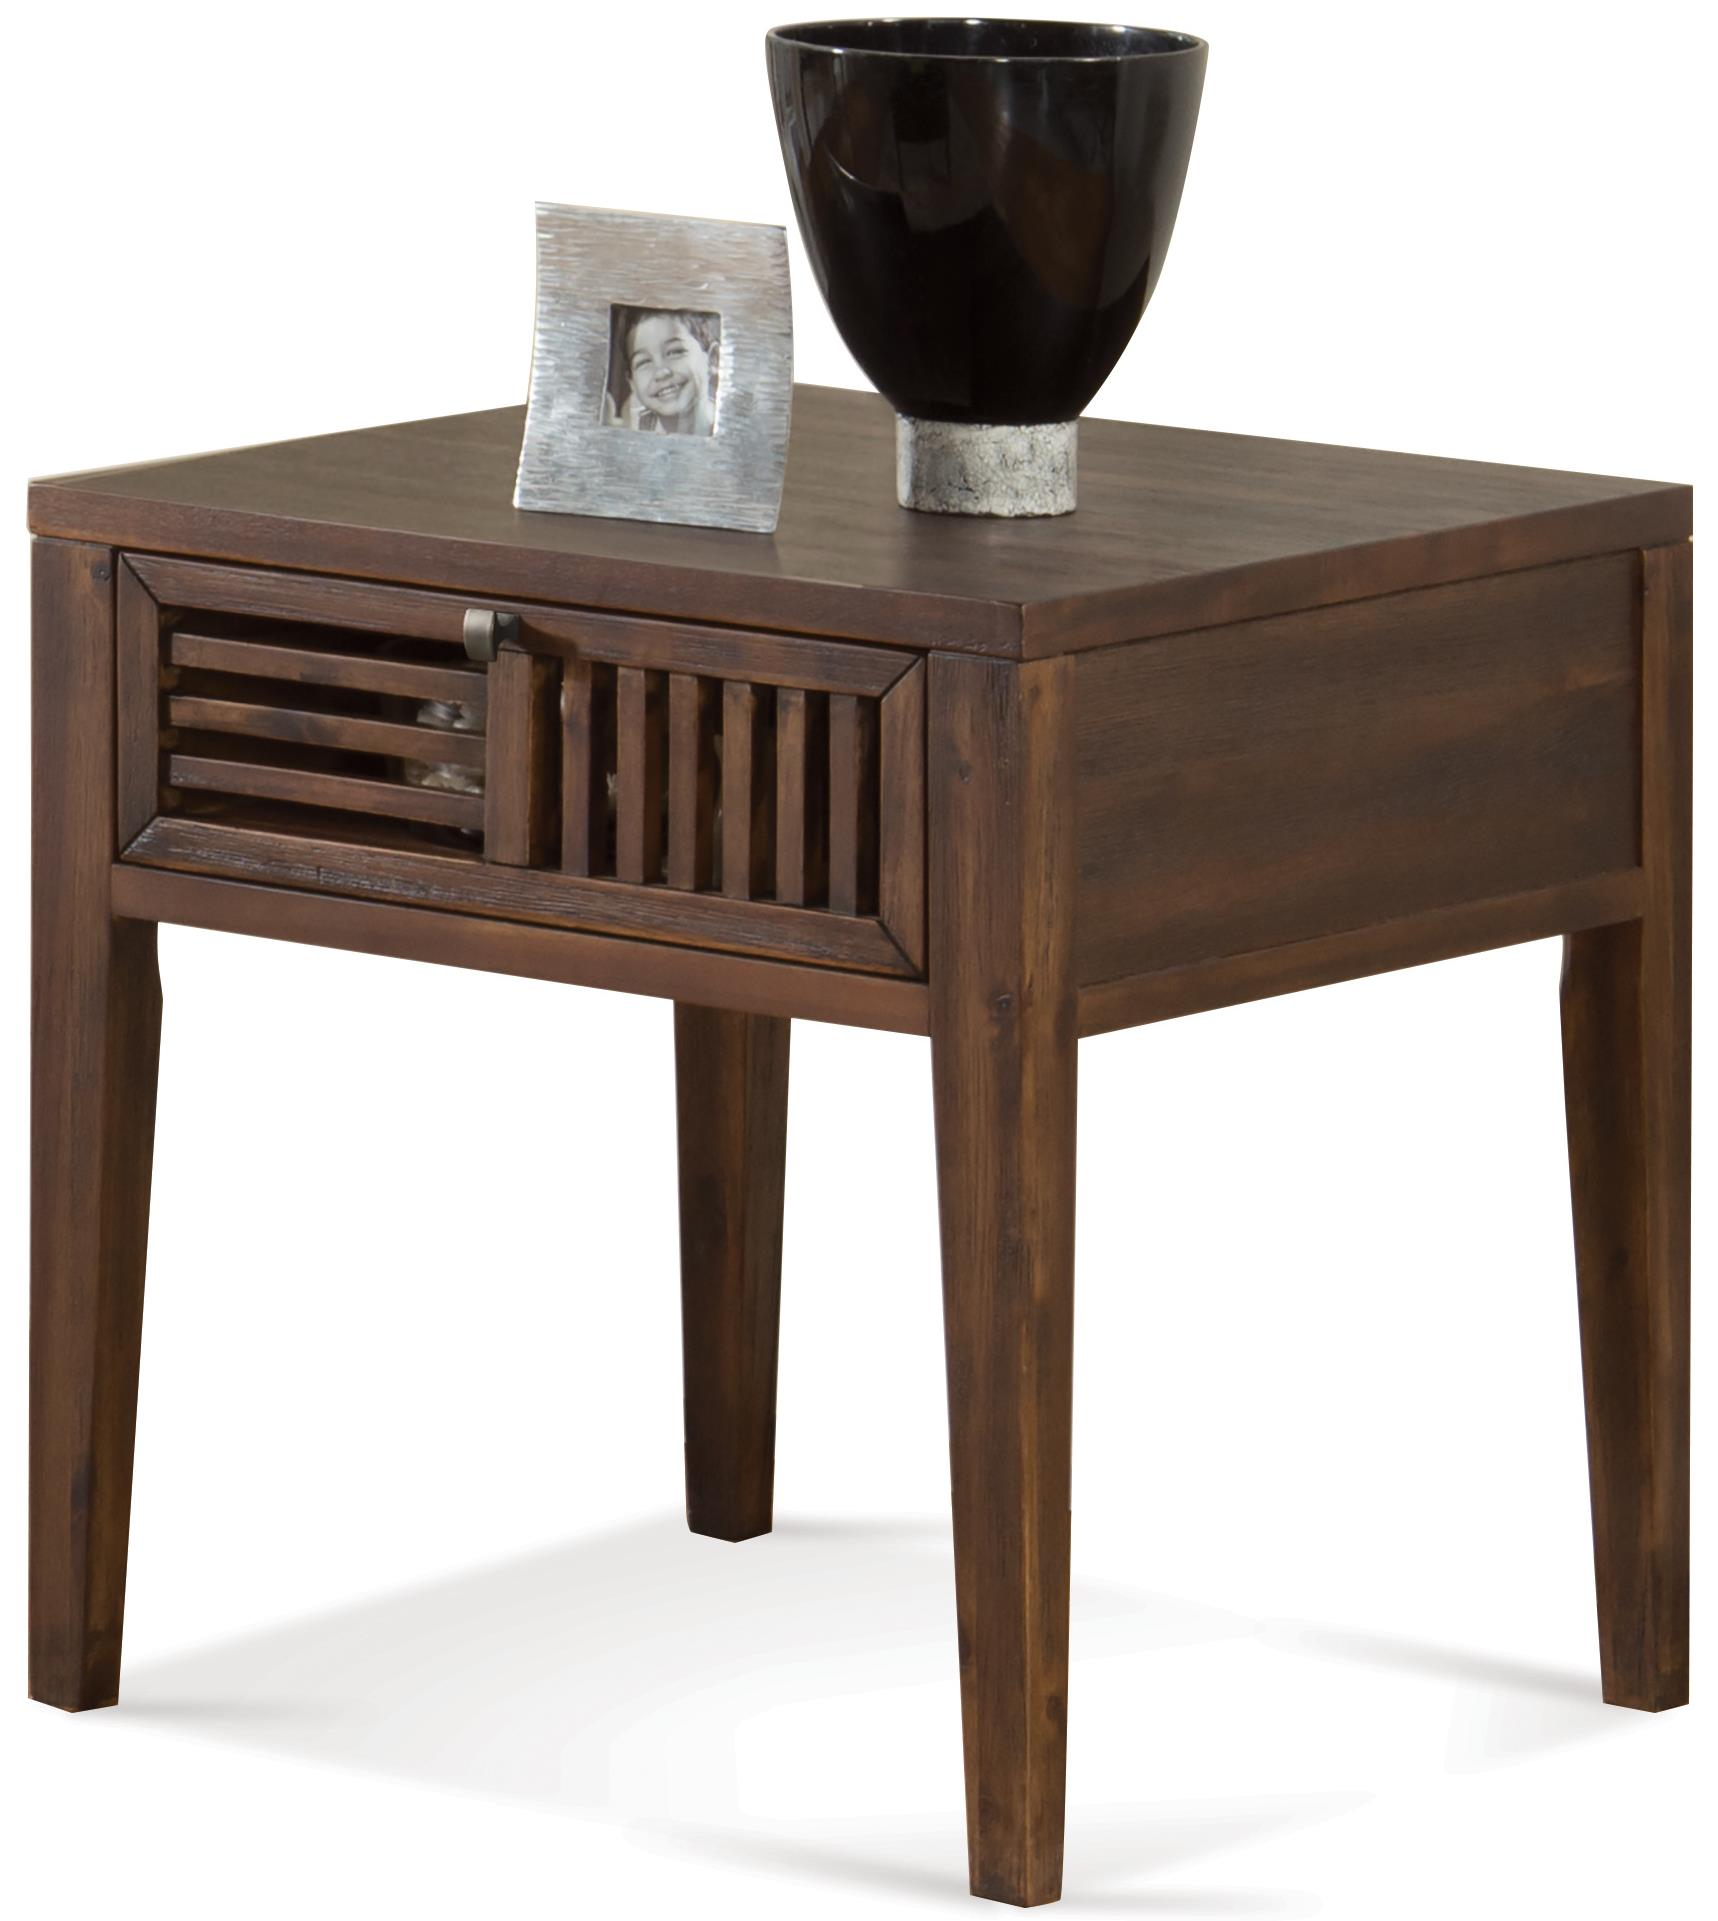 Riverside Furniture Modern Gatherings Open Slat End Table - Item Number: 15307